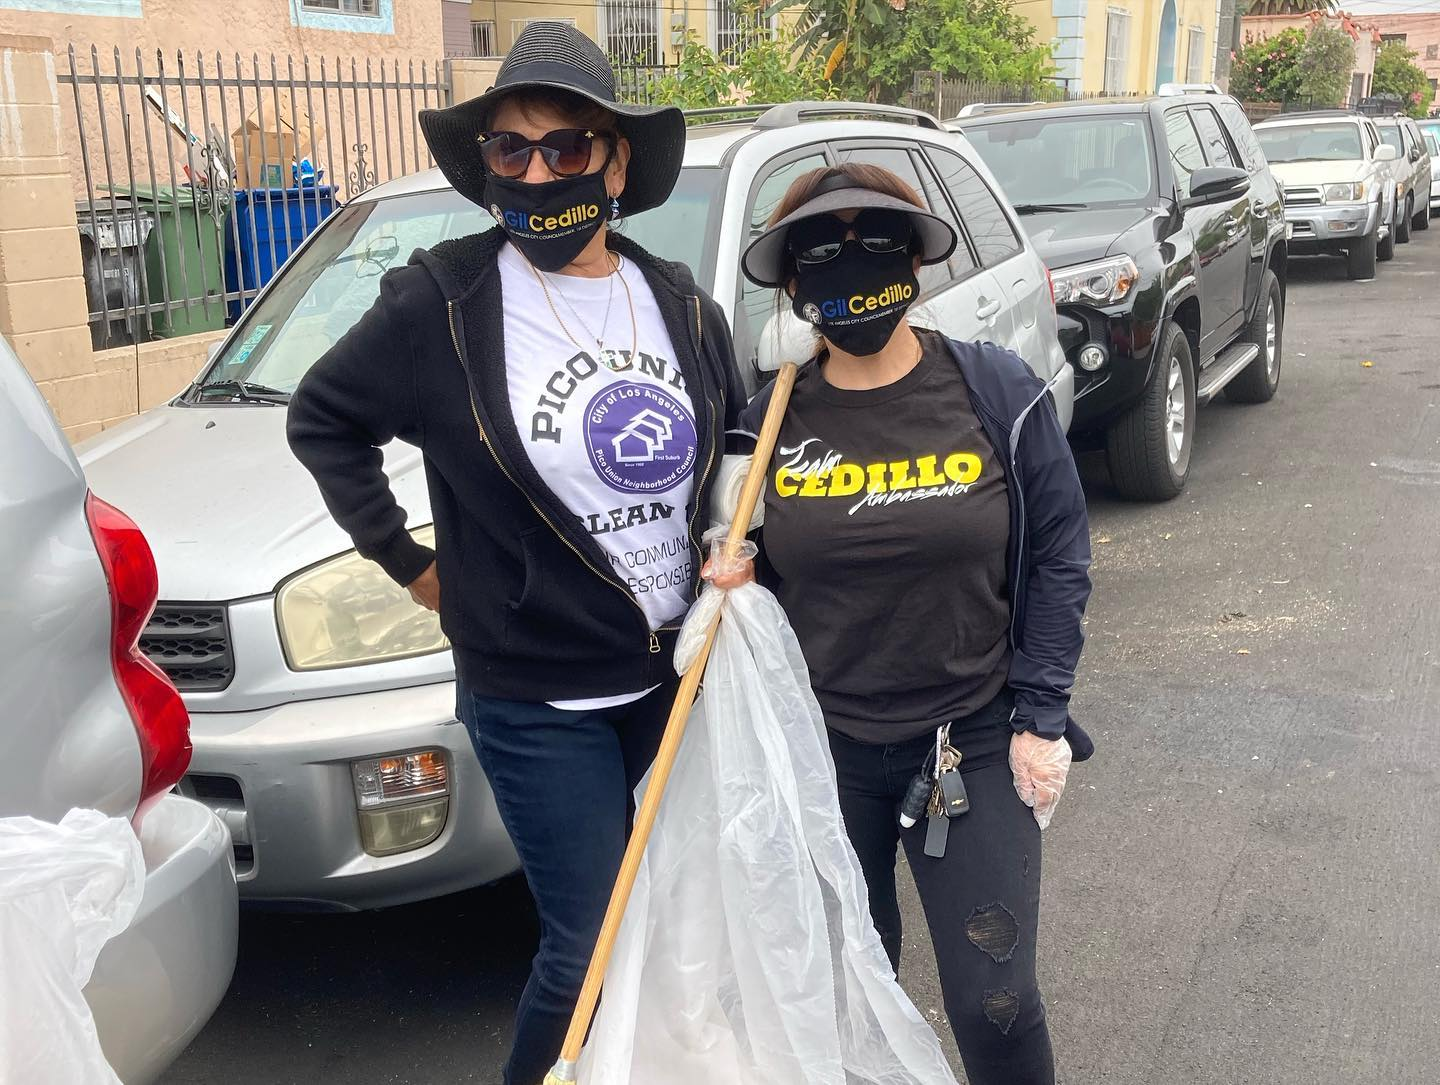 Team Cedillo, Constance Neighbors & Pico Union NC at Clean Up & distribution of 311 info 5-29-2021 #2